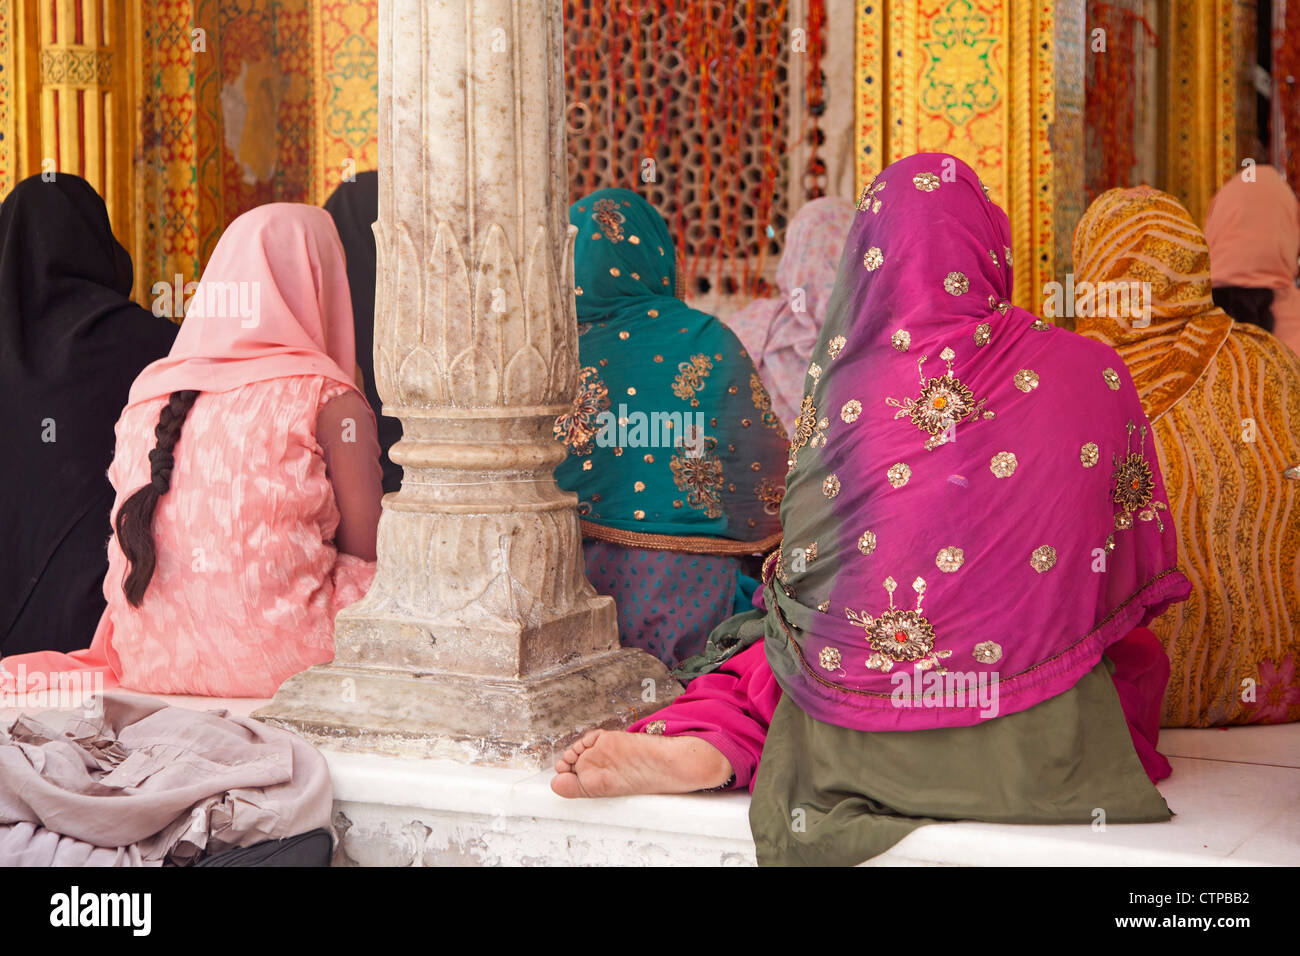 Muslim women wearing colourful headscarfs and saris praying at the Nizam-Ud-Din shrine in Delhi, India - Stock Image